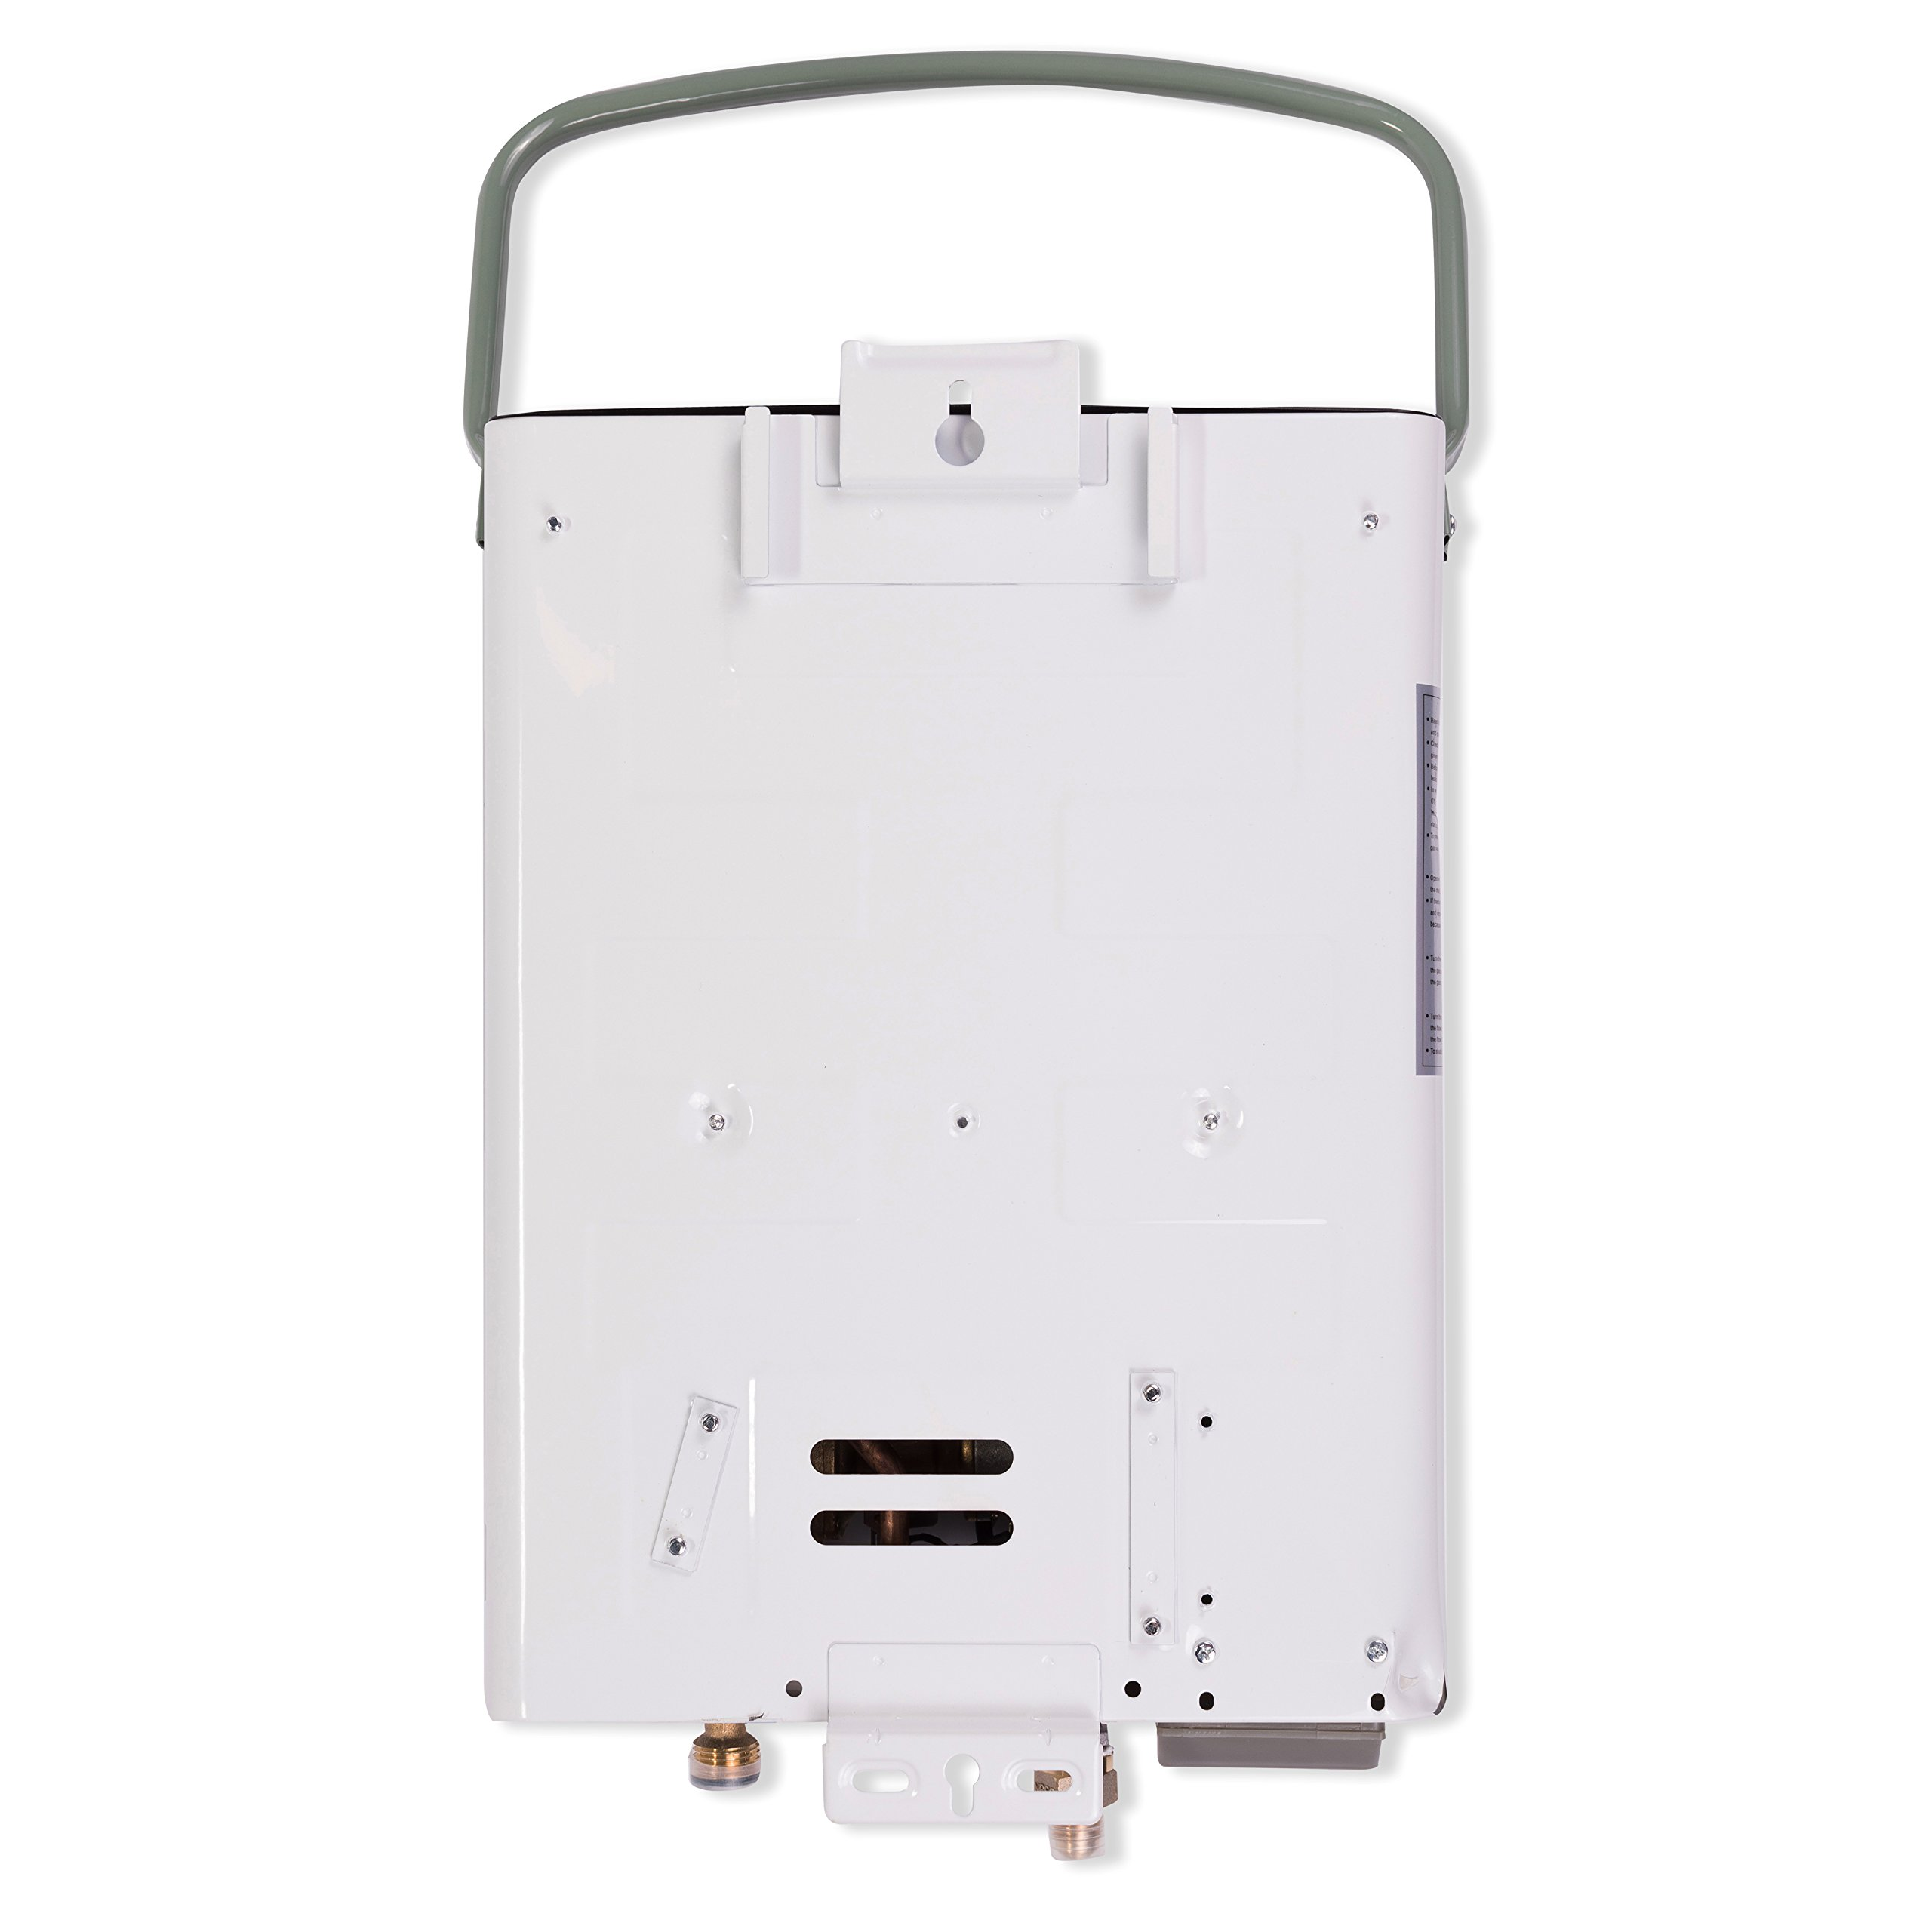 Eccotemp L5 Portable Tankless Water Heater by Eccotemp (Image #3)